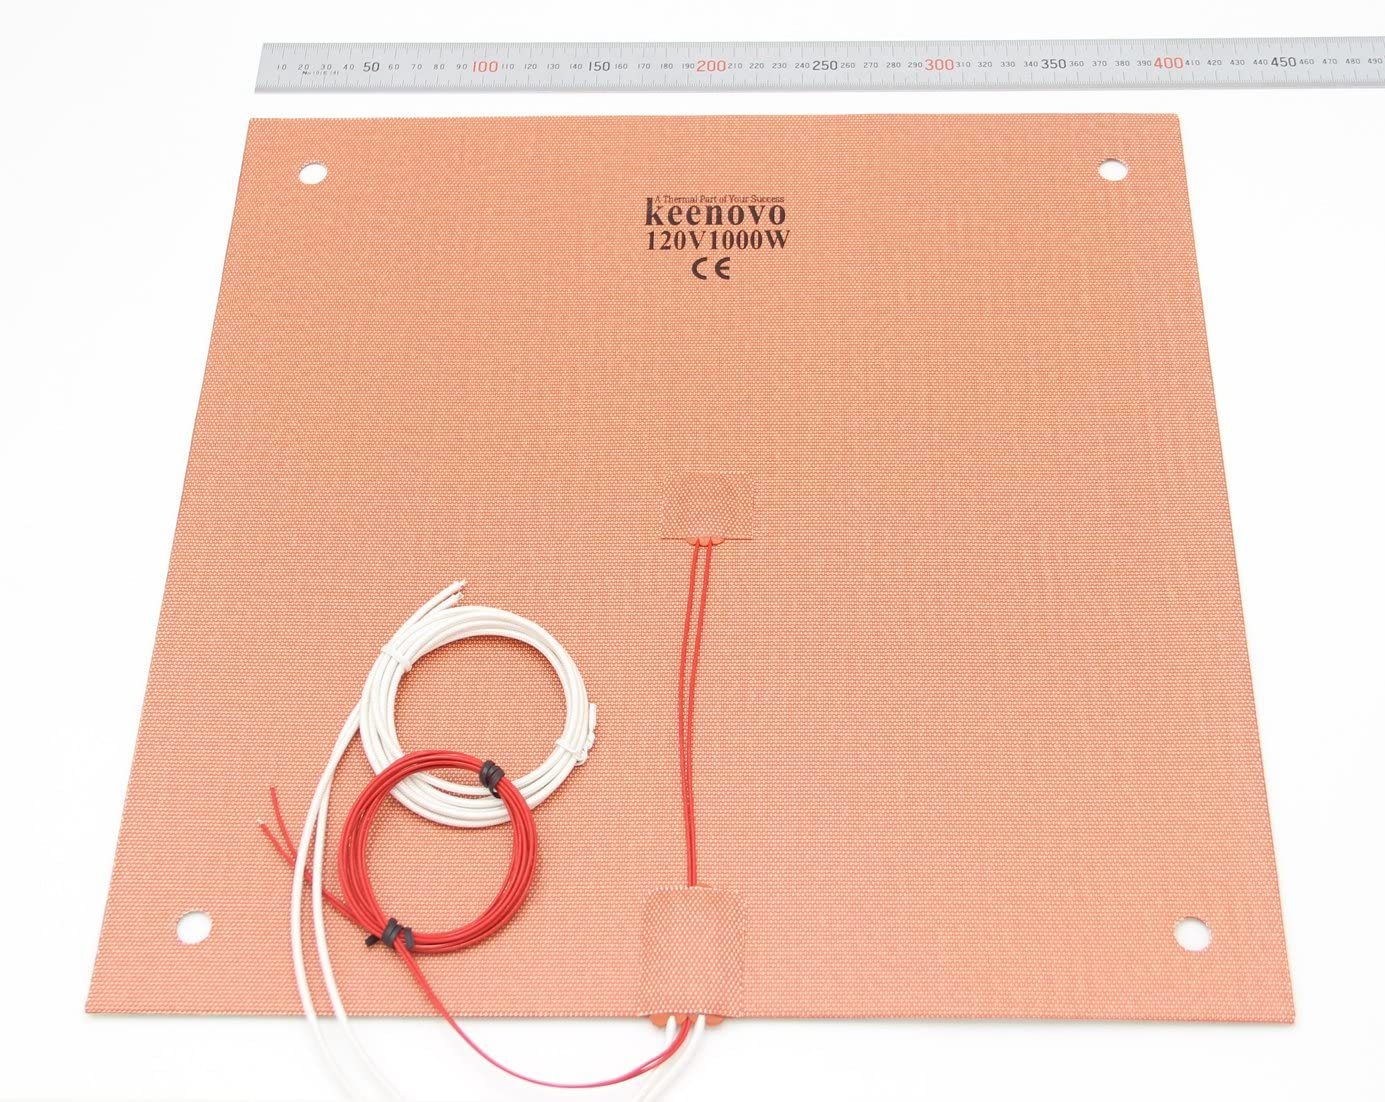 KEENOVO Silicone Heater 400x400mm 1000W for Creality CR-10 S4 3D Printer Bed w/Screw Holes (120V)